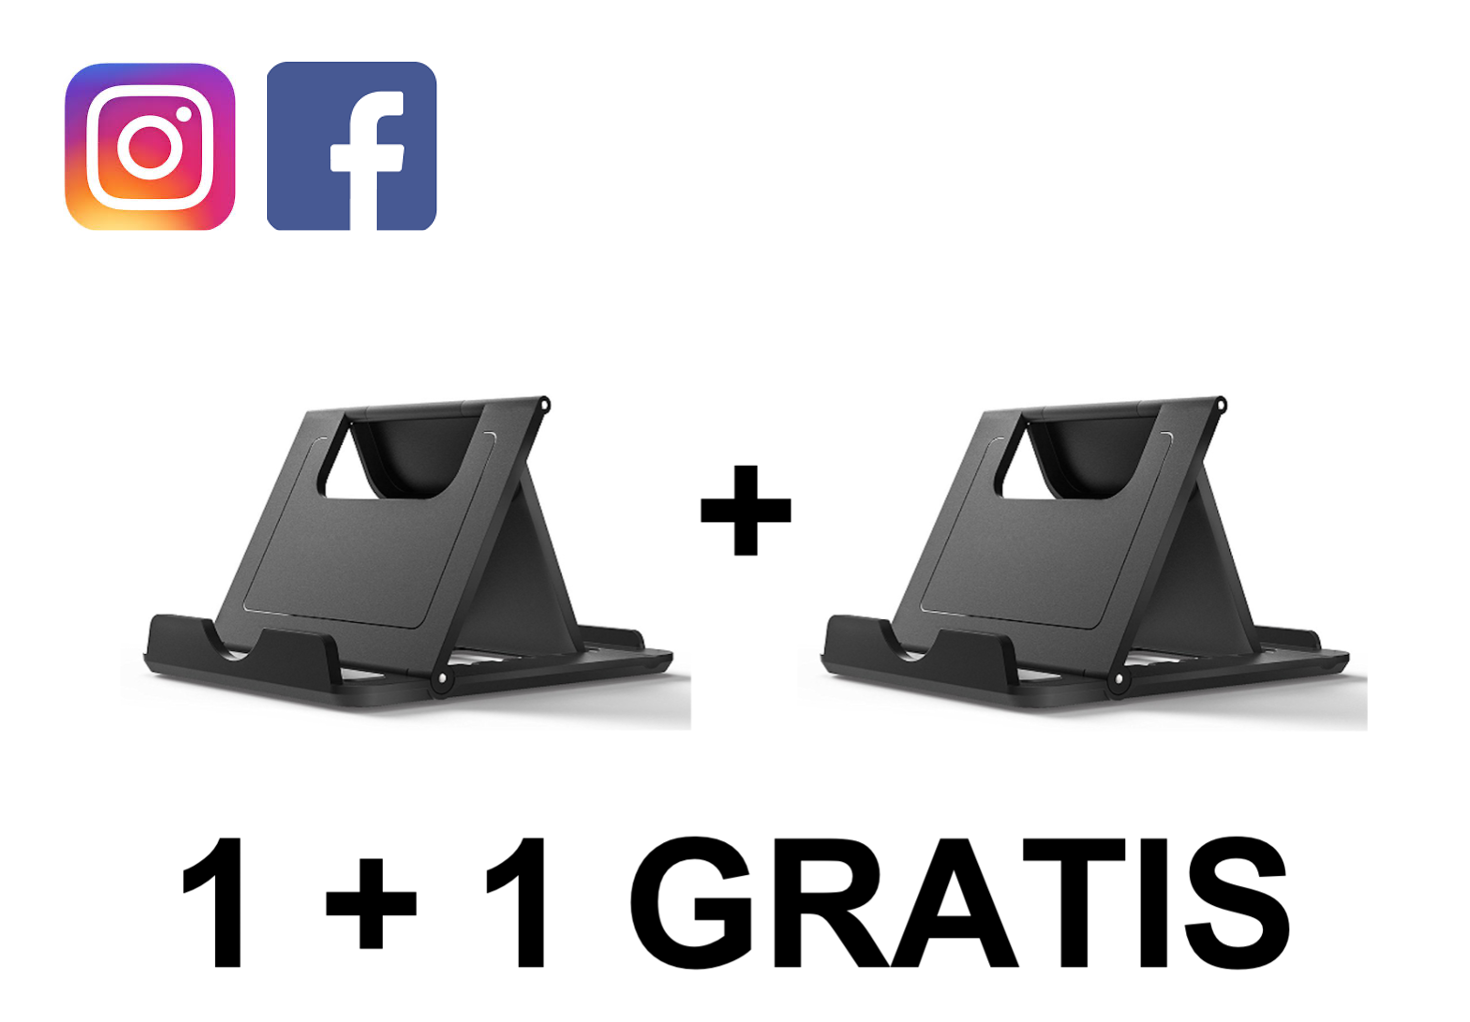 1 + 1 Gratis Team & Zoom Compact